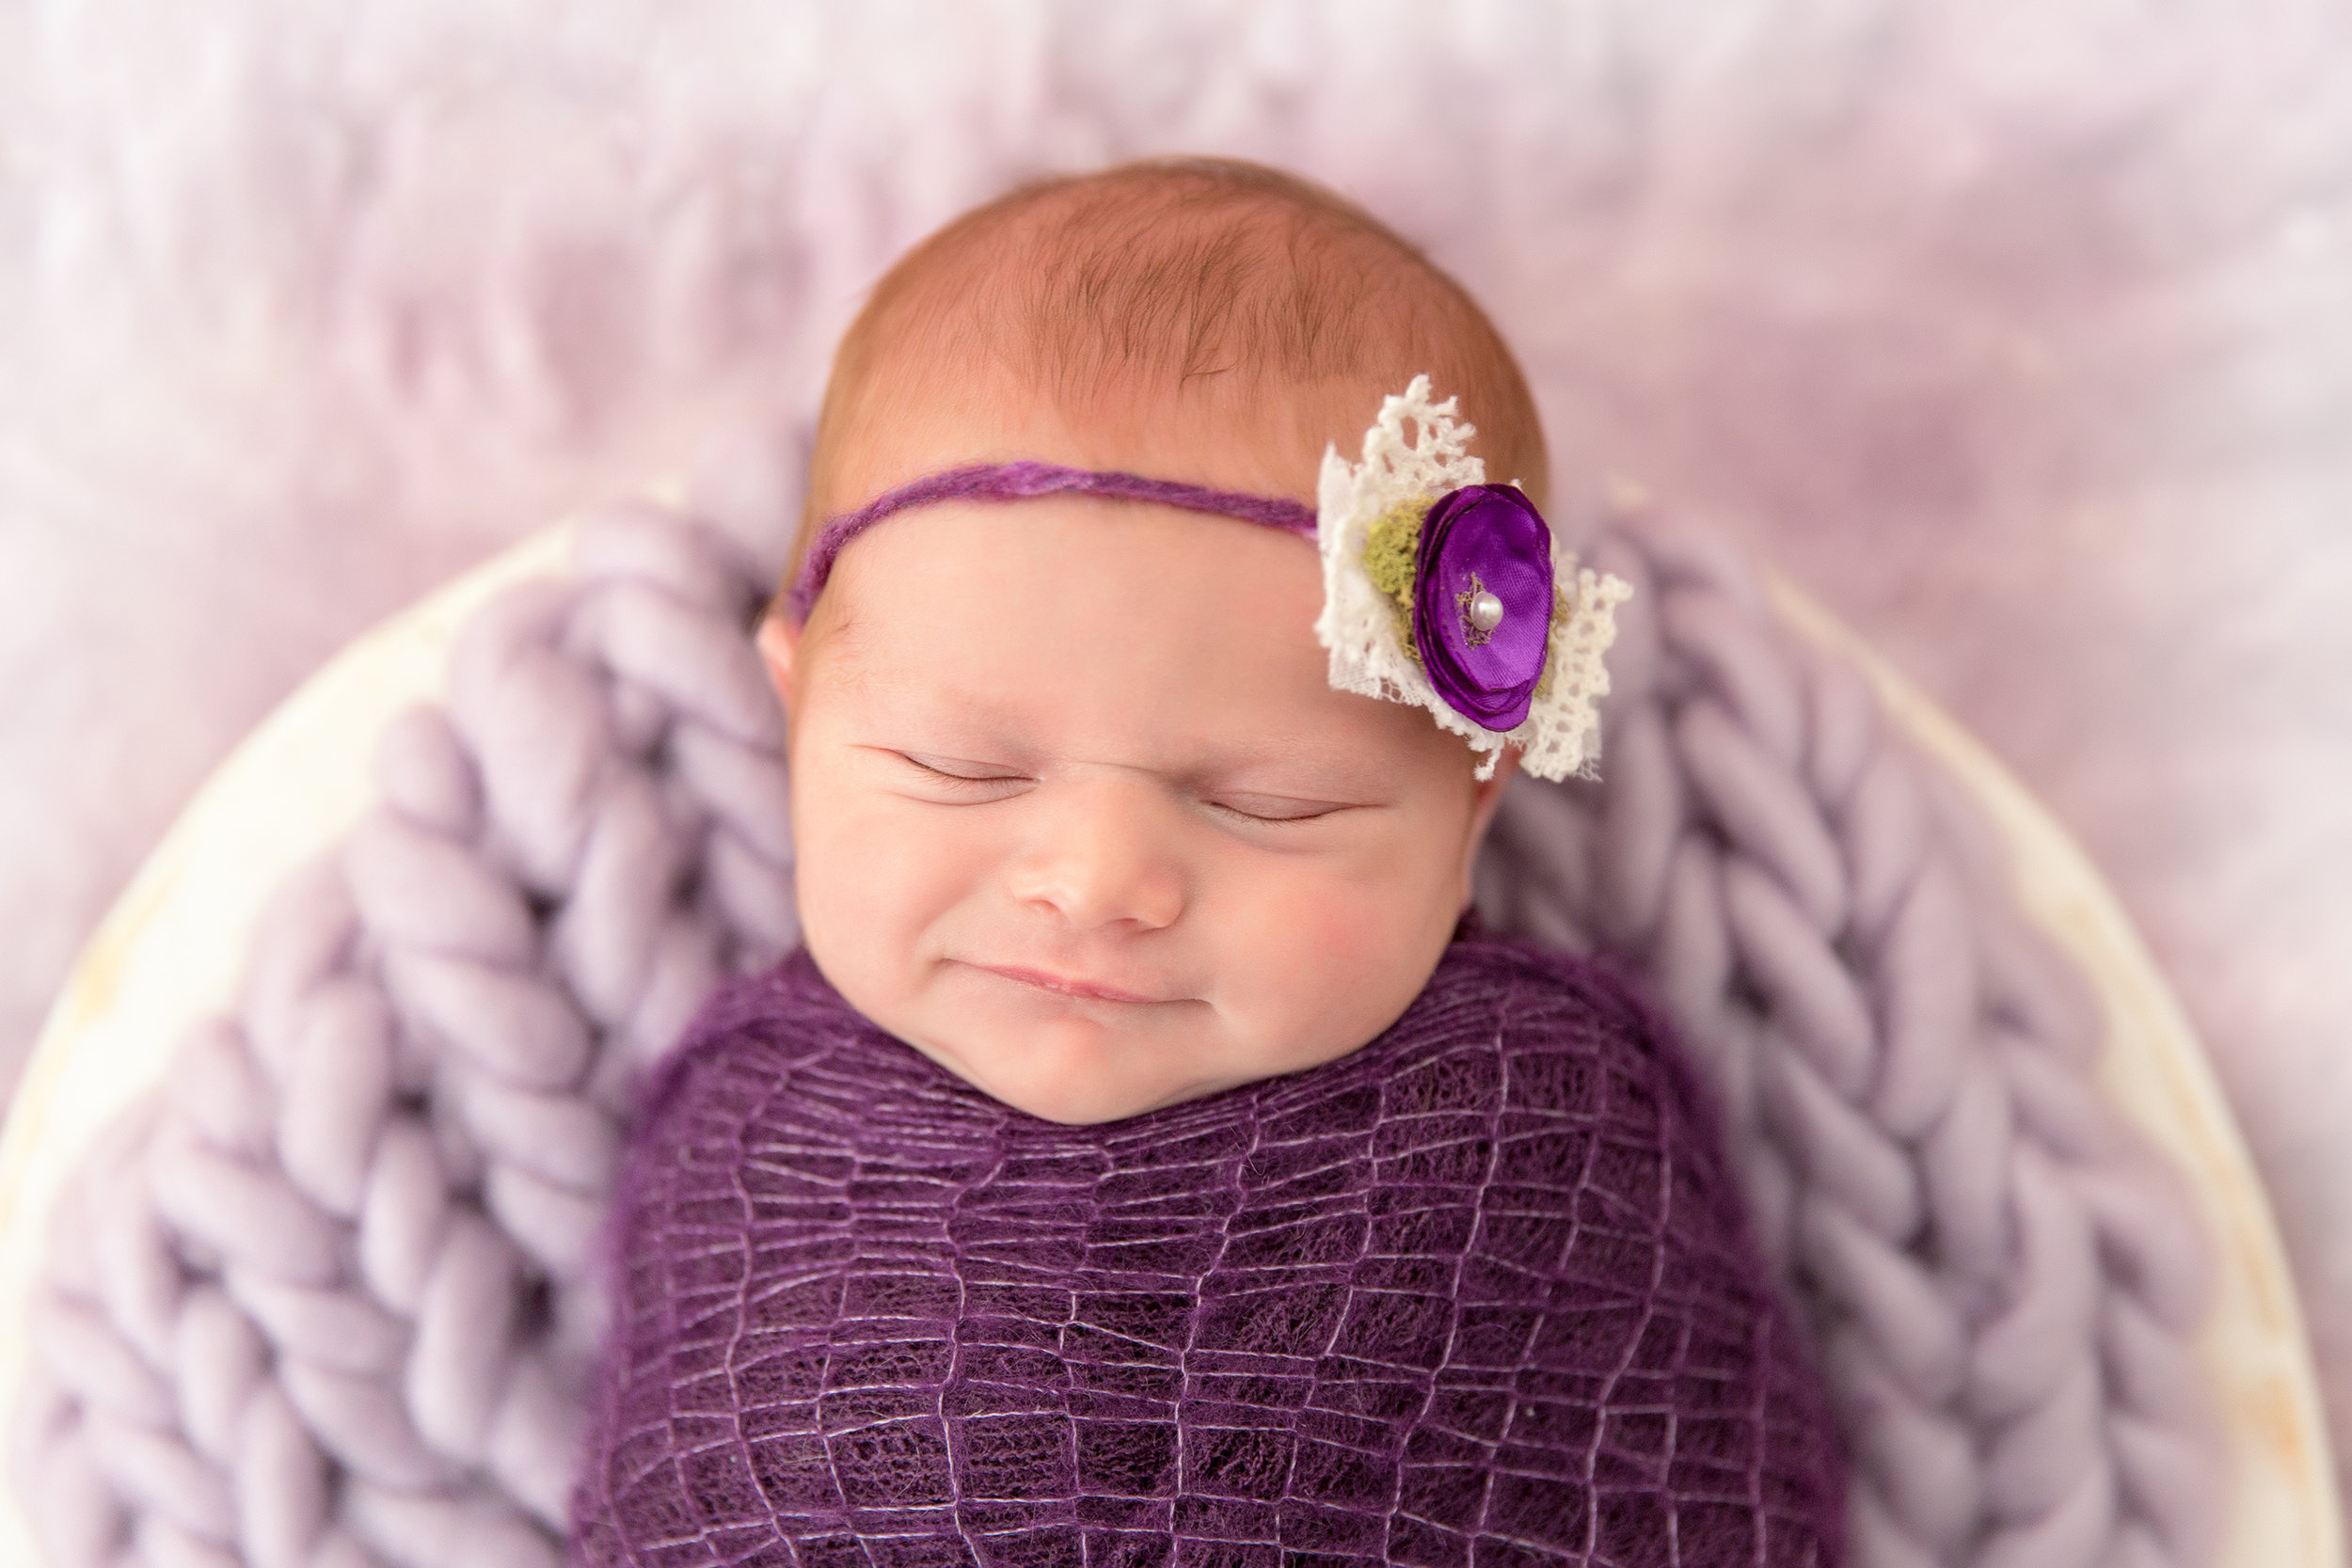 Newborn baby girl smiling. Wrapped in a purple wrap with a purple headband, lying in a white wooden bowl. Newborn baby inspiration photoshoot. Milashka Photography - Calgary Photographer